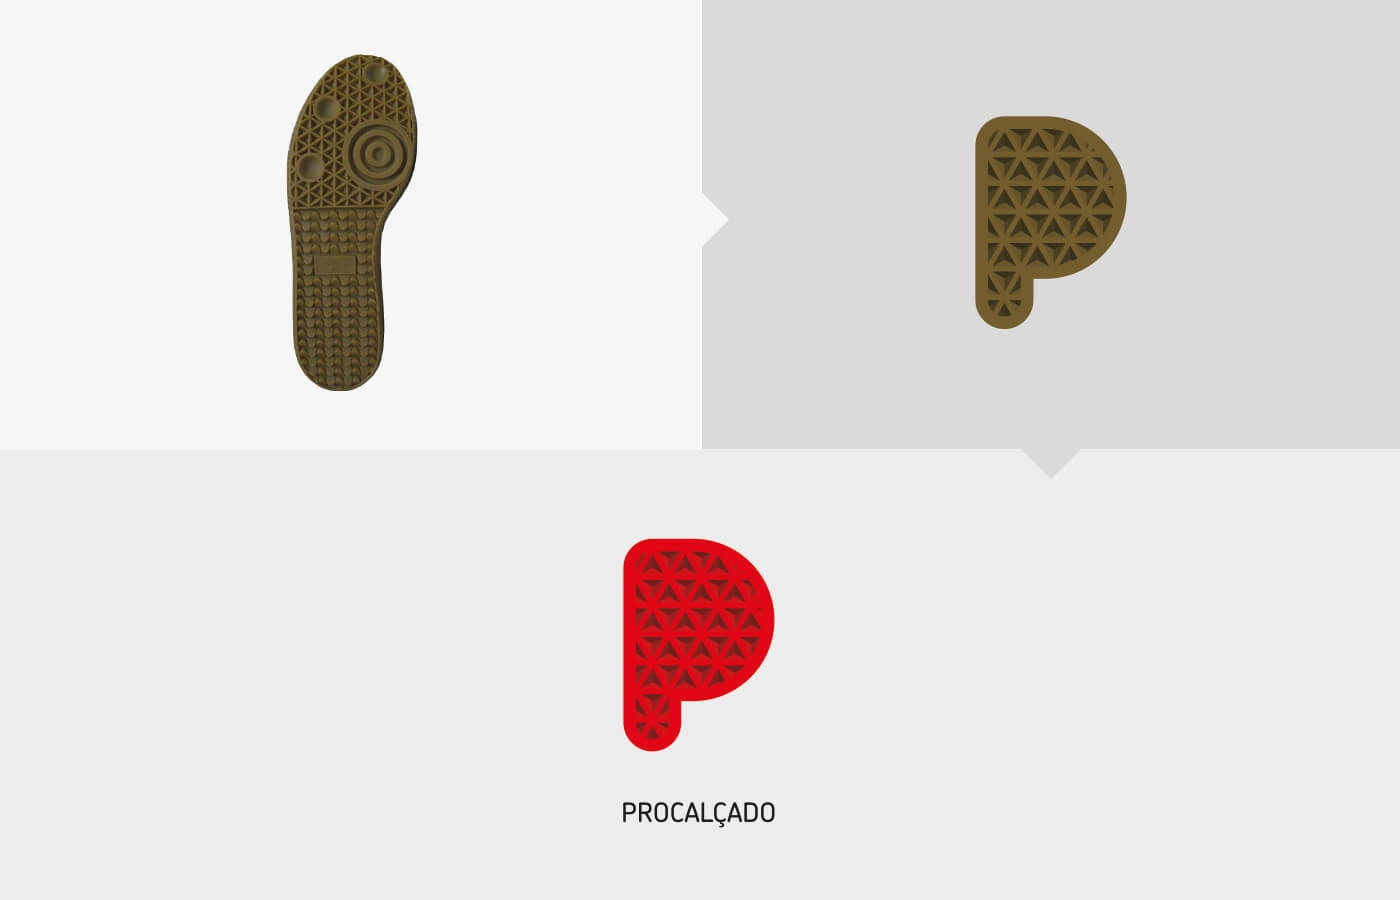 Footwear, soles, branding, industry, manufacture, factory, stationary, design, marketing